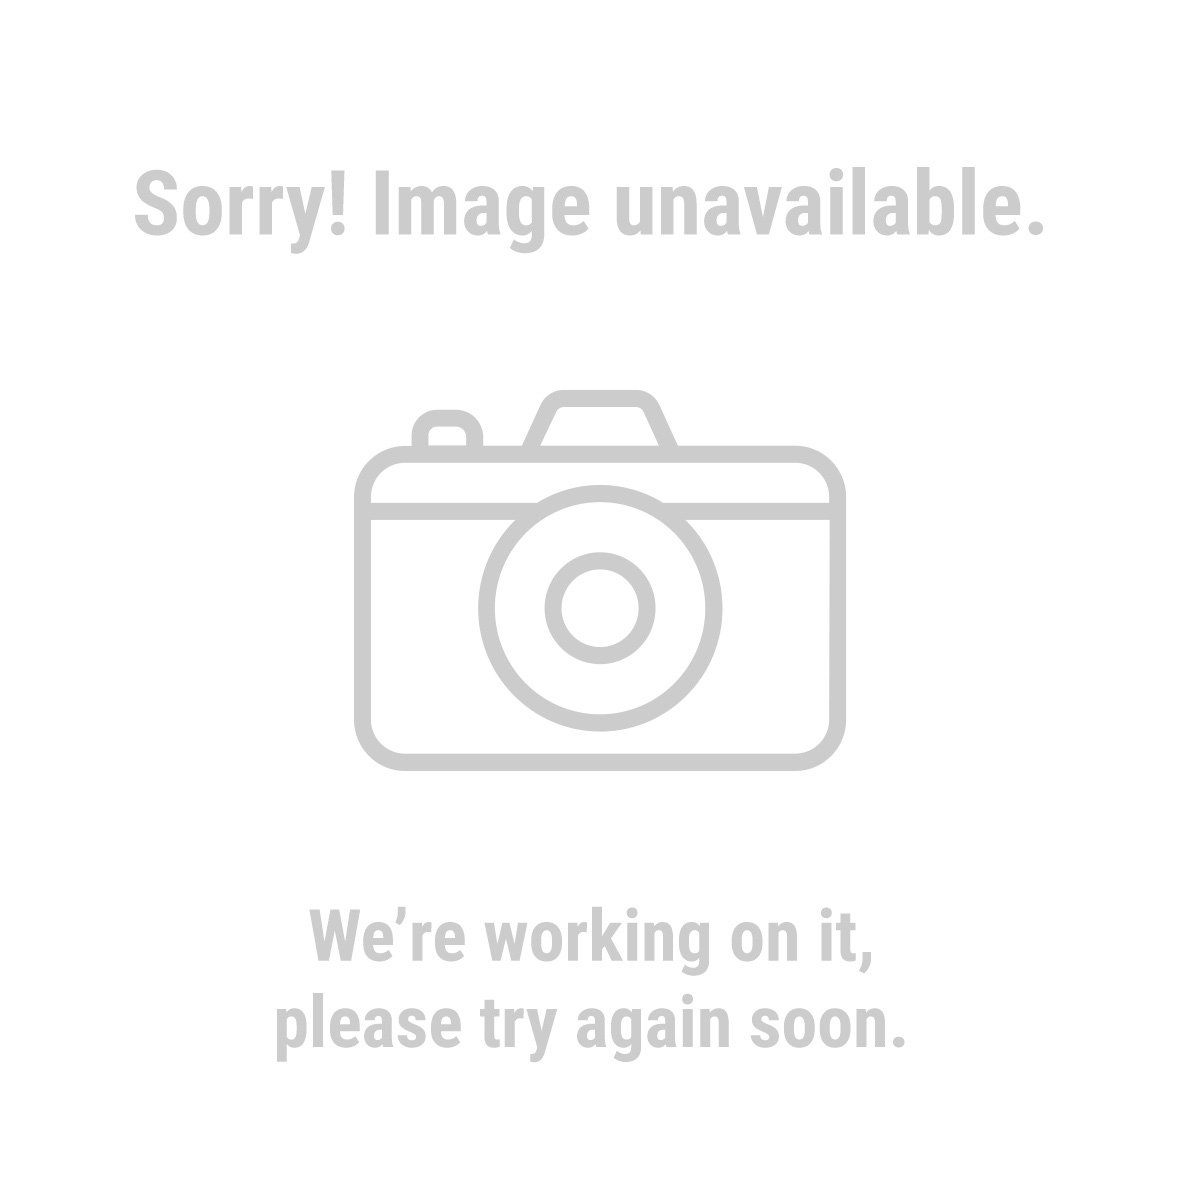 Central Pneumatic 62895 64 oz. Professional HVLP Air Spray Gun Kit